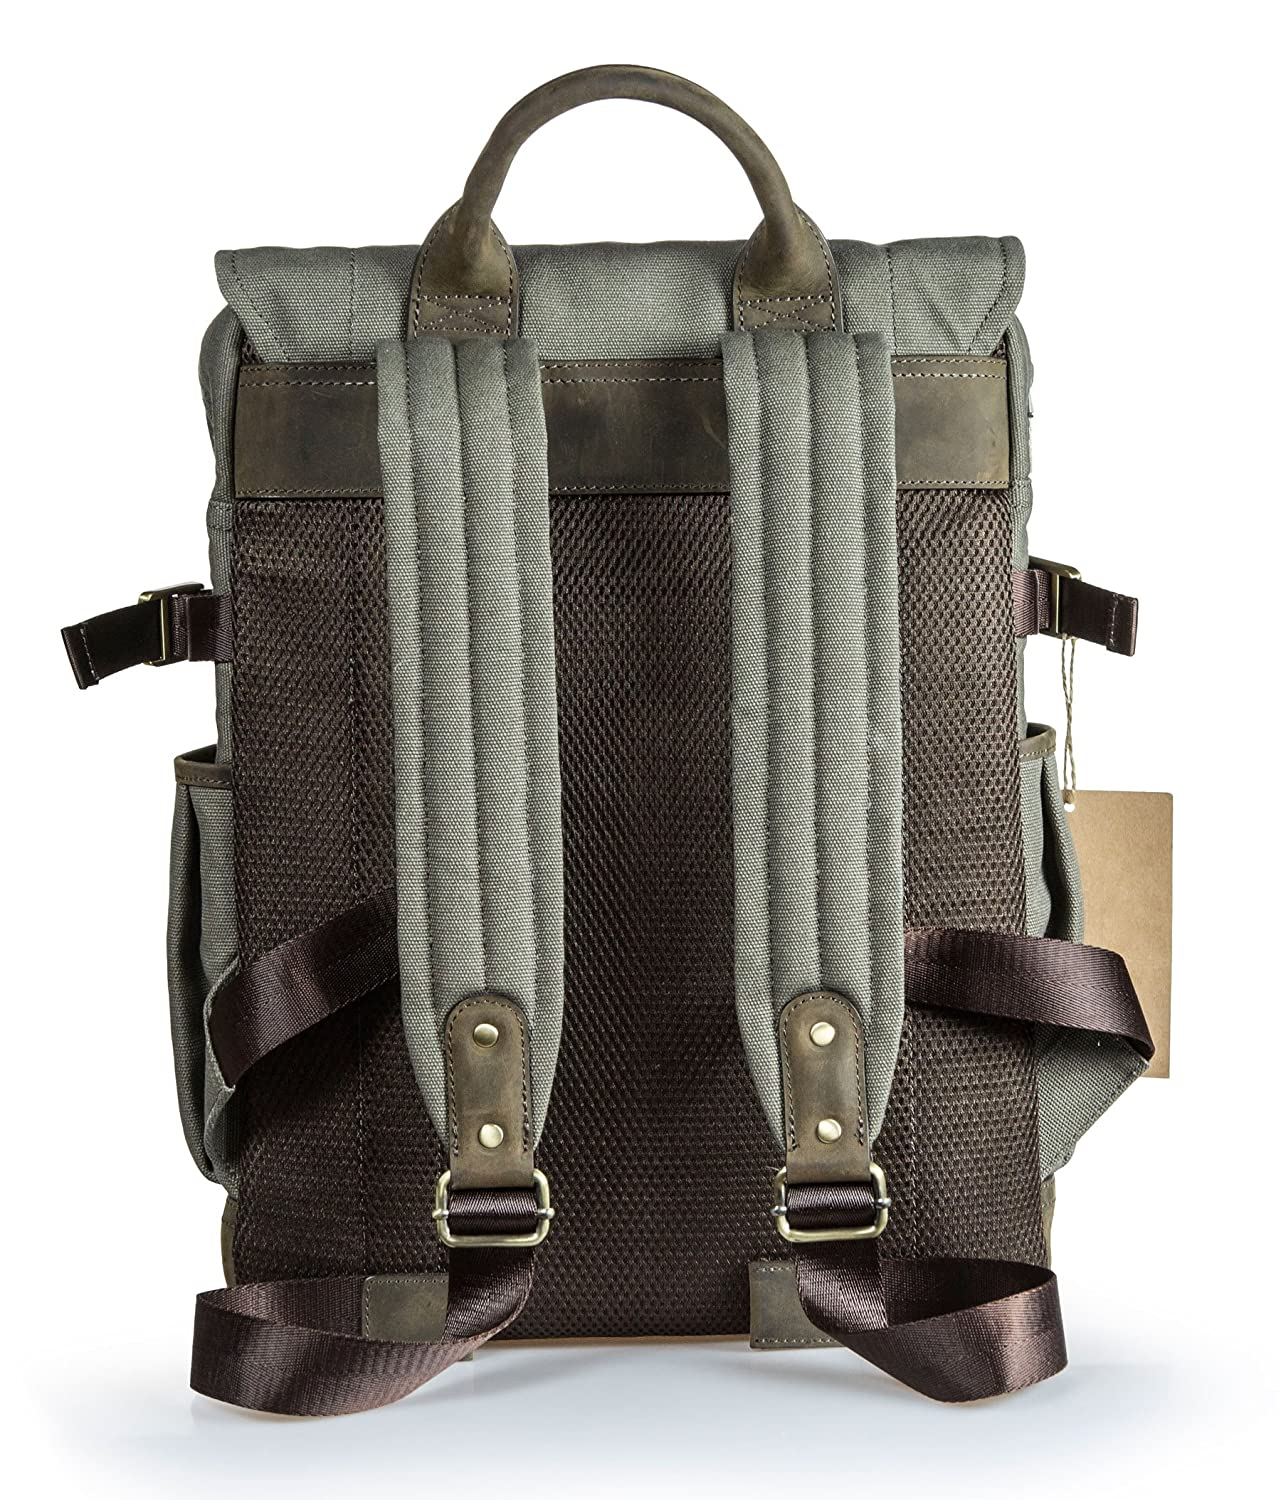 c2637b23d Amazon.com : Portage Kenora Waxed Canvas Leather Backpack for Camera and  Laptop : Electronics